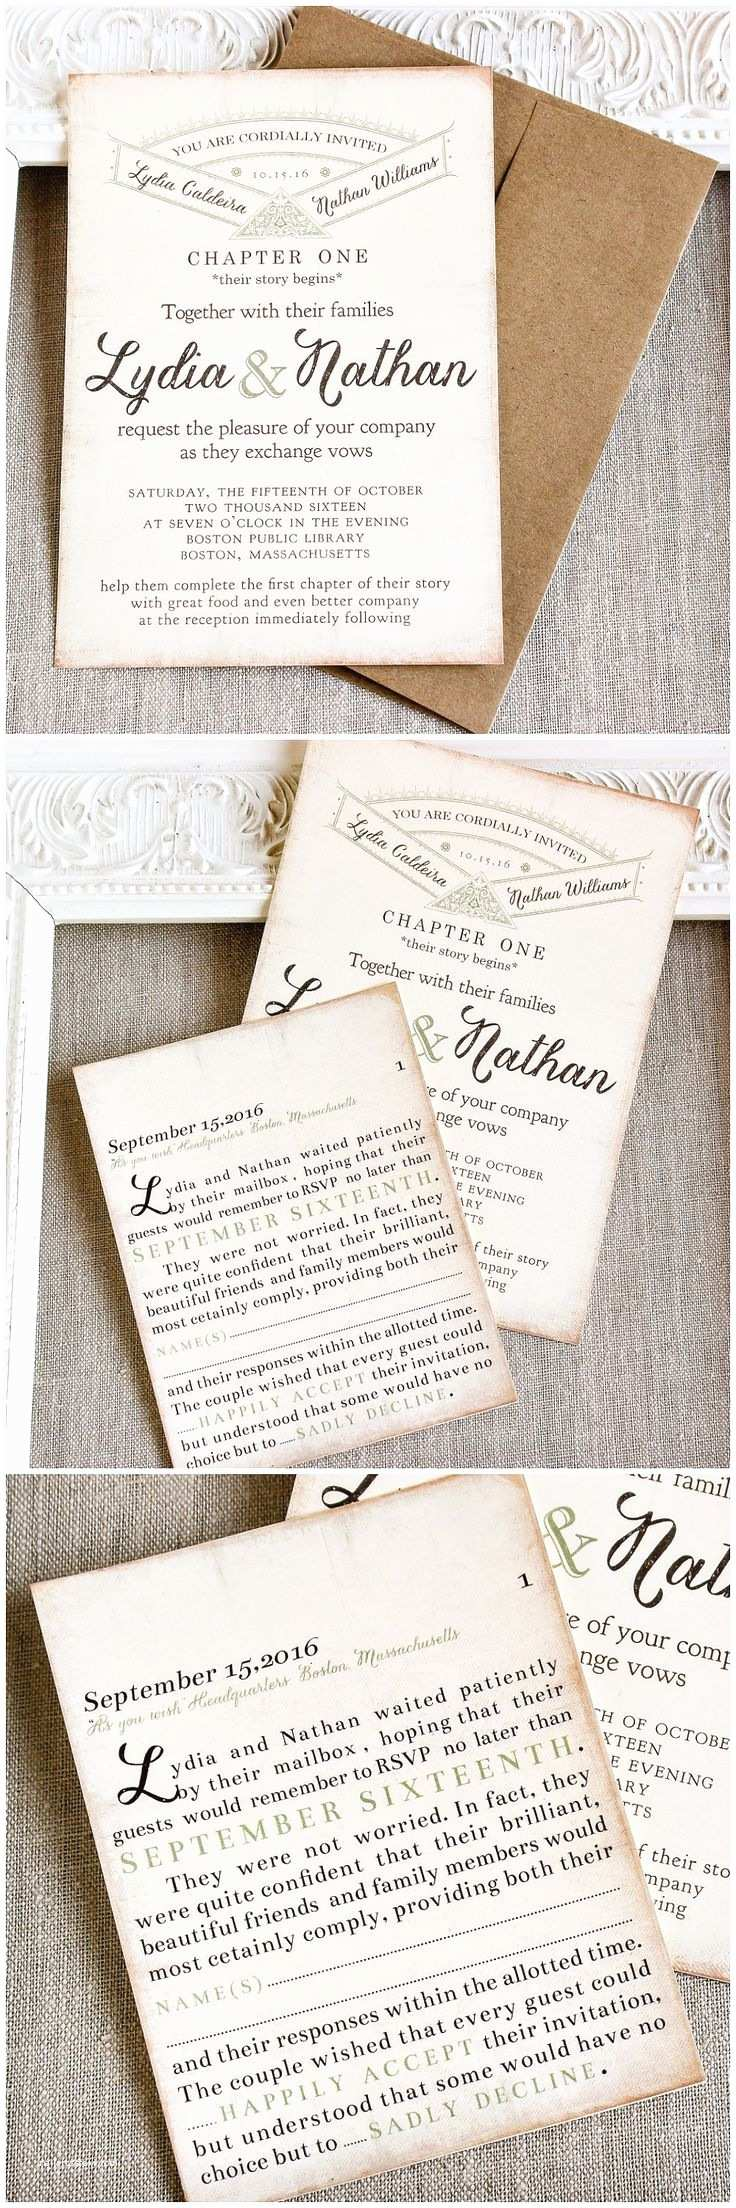 Literary themed Wedding Invitations 25 Best Ideas About Literary themes On Pinterest